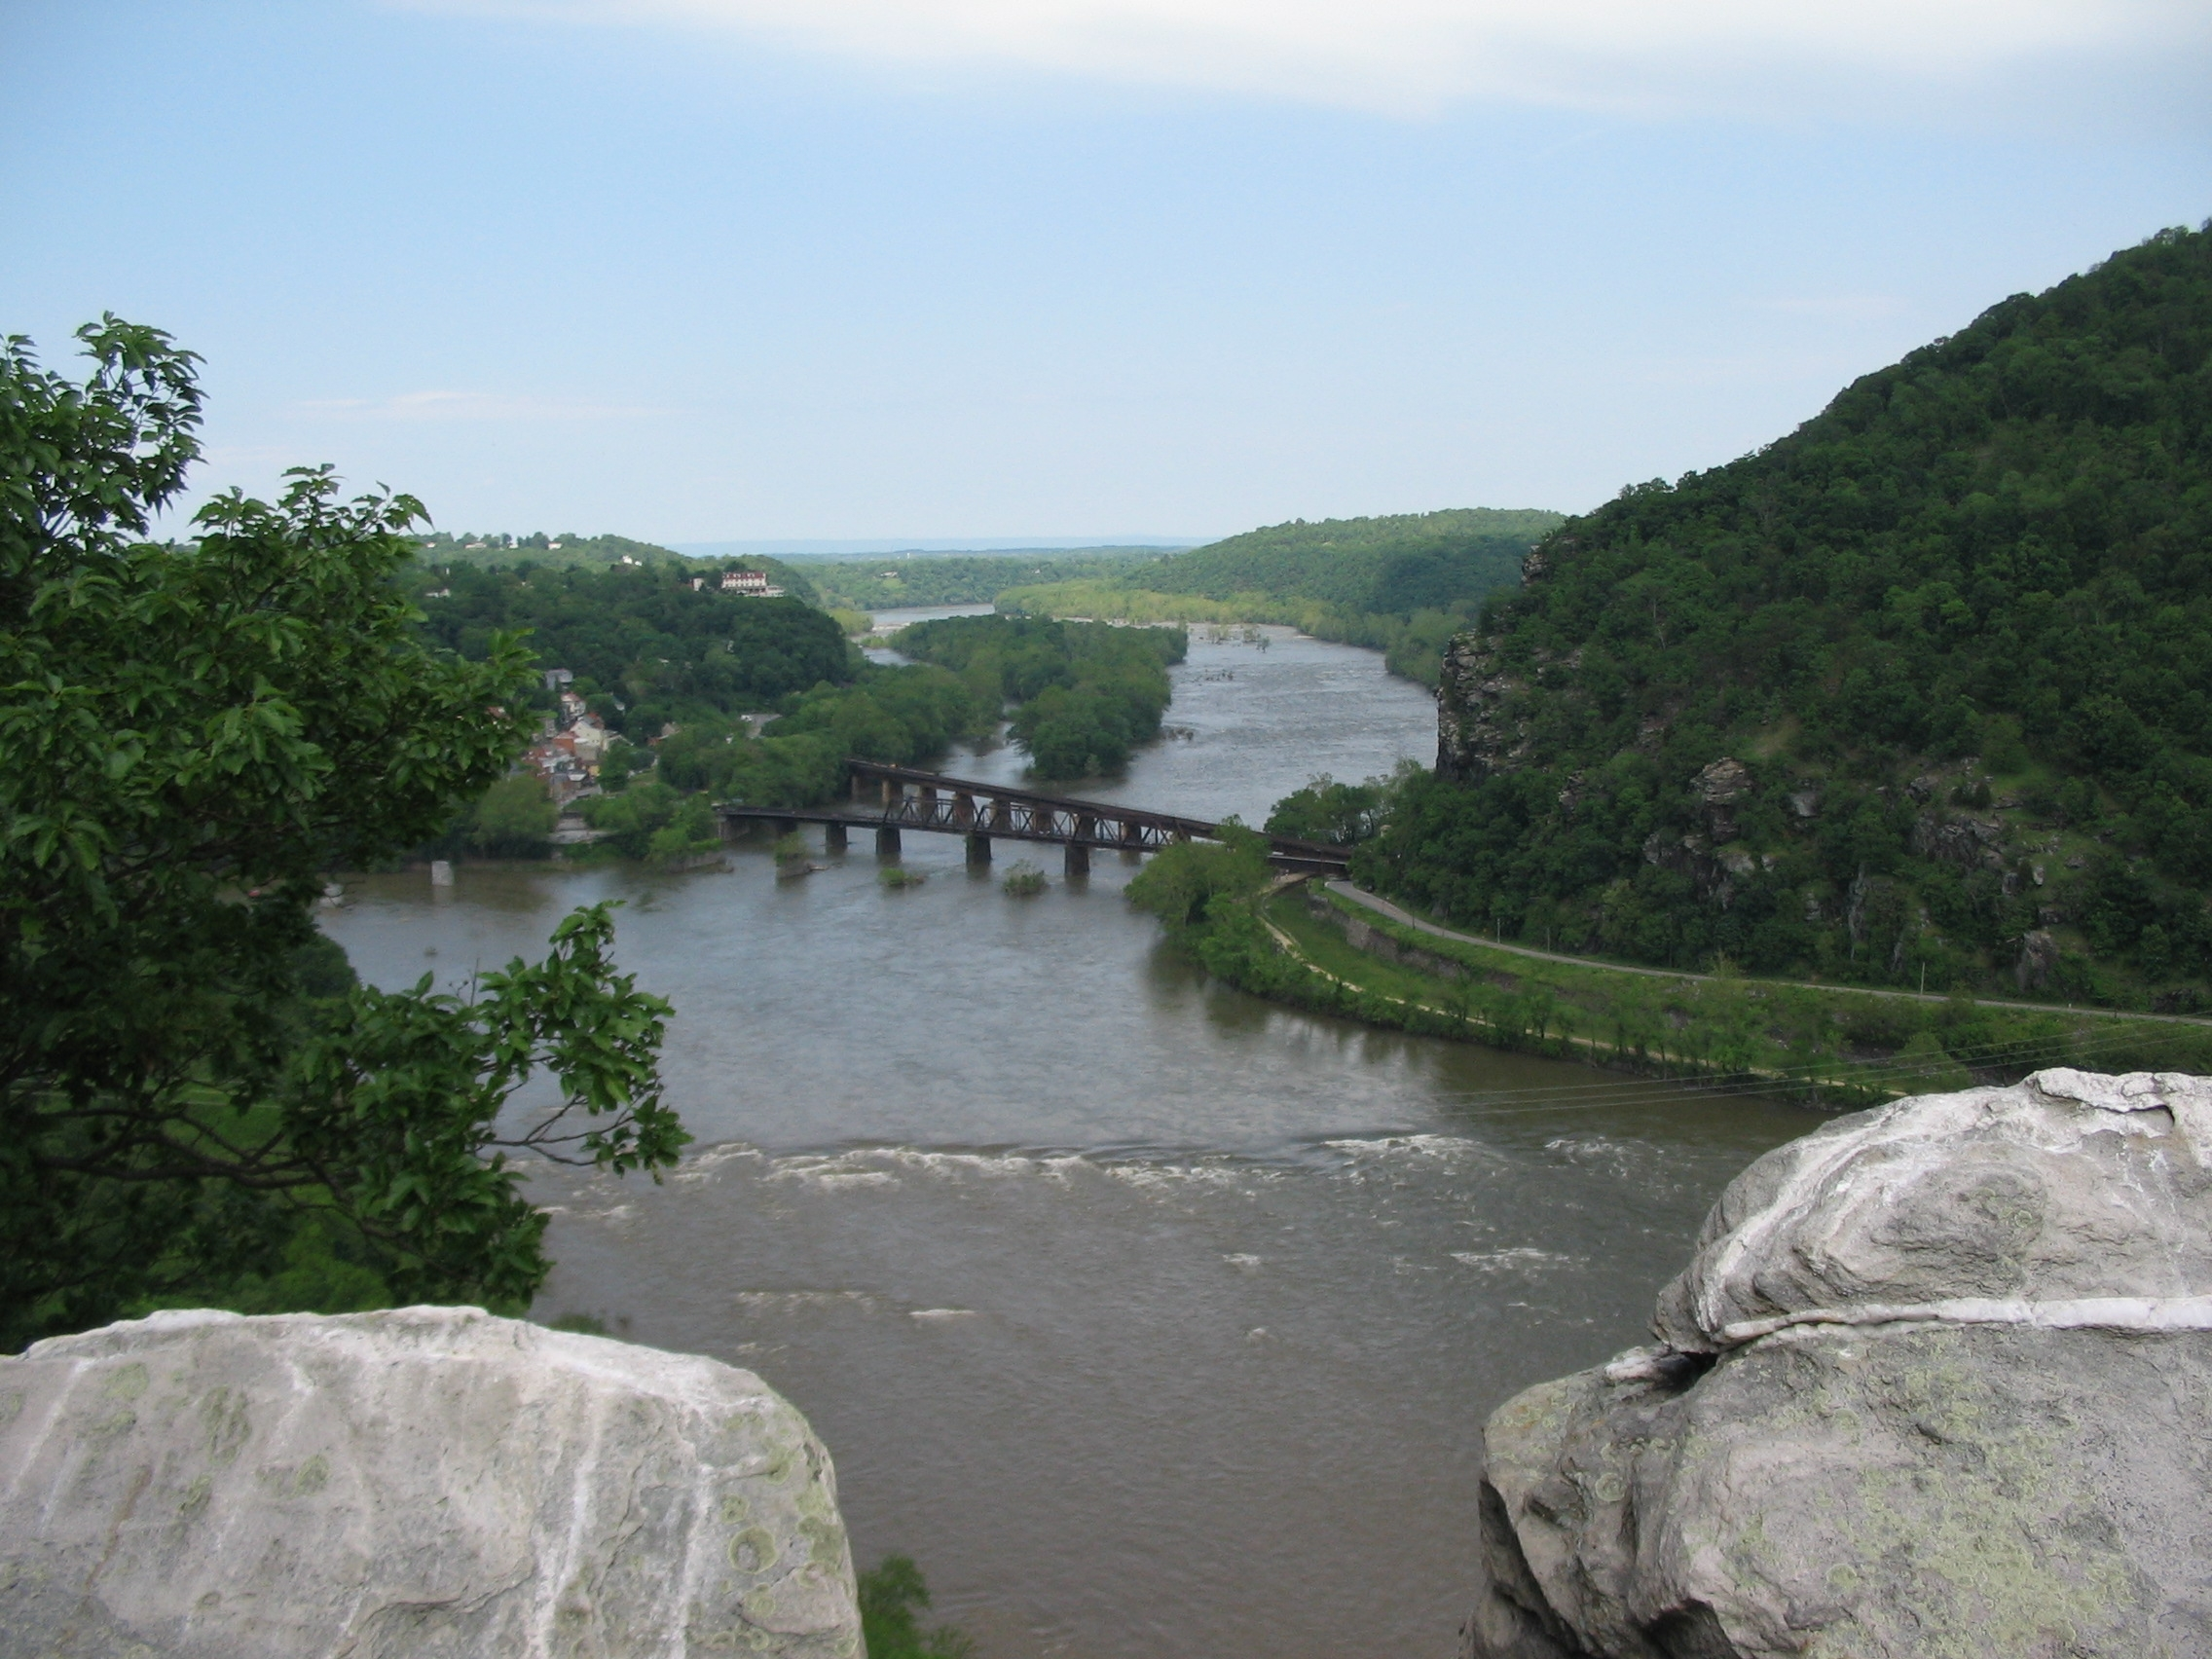 The Objective - Harpers Ferry